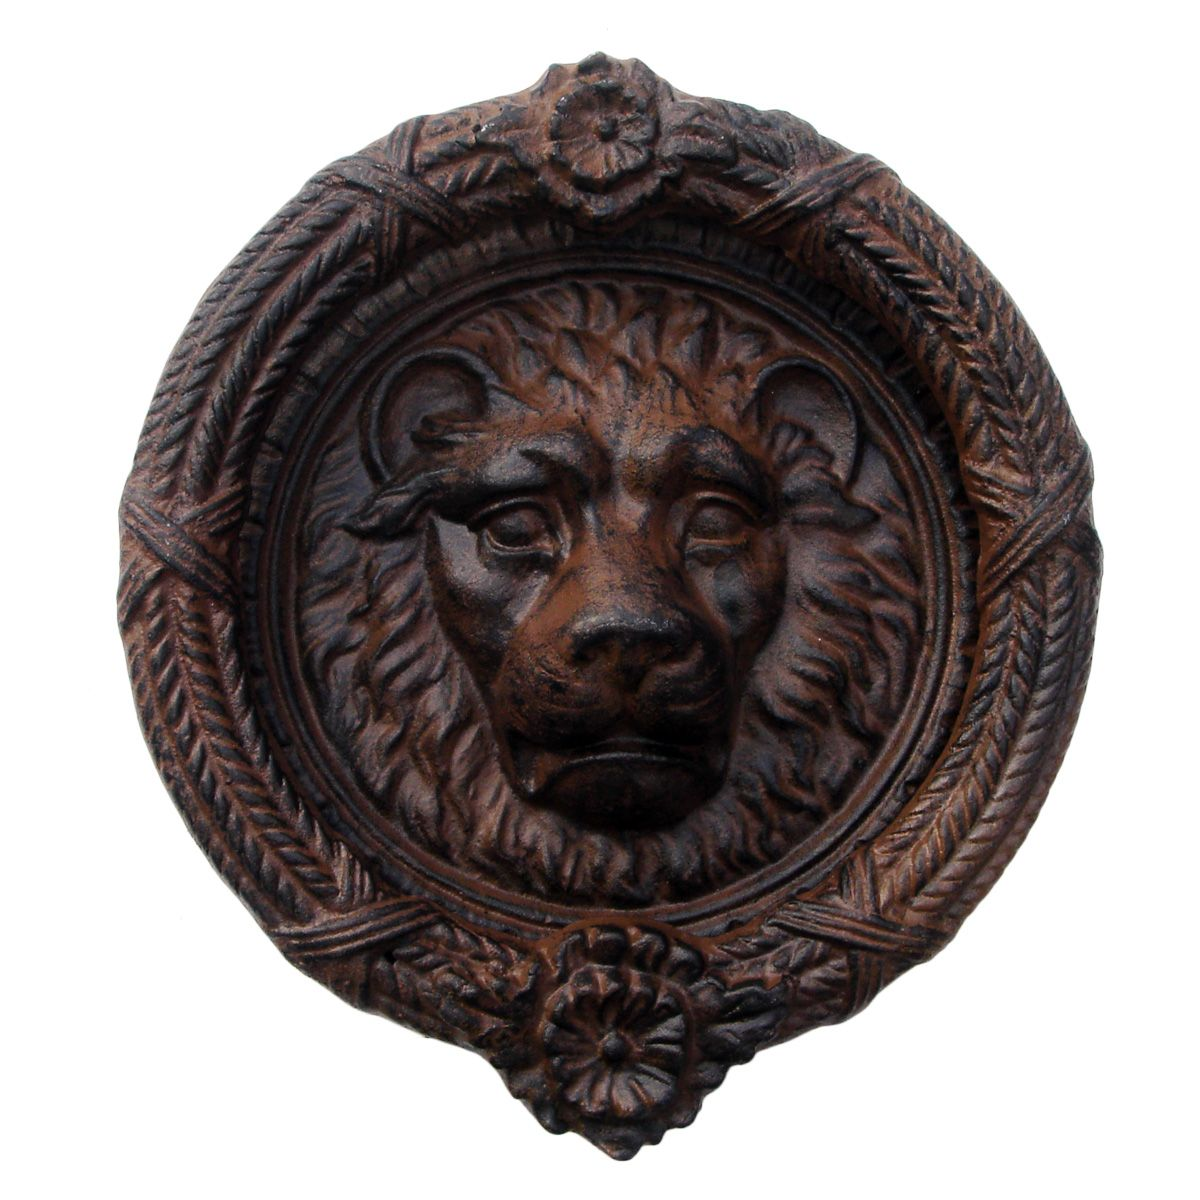 Rustic Door Knockers First Impressions Door Knocker The Pair Of Large Lion